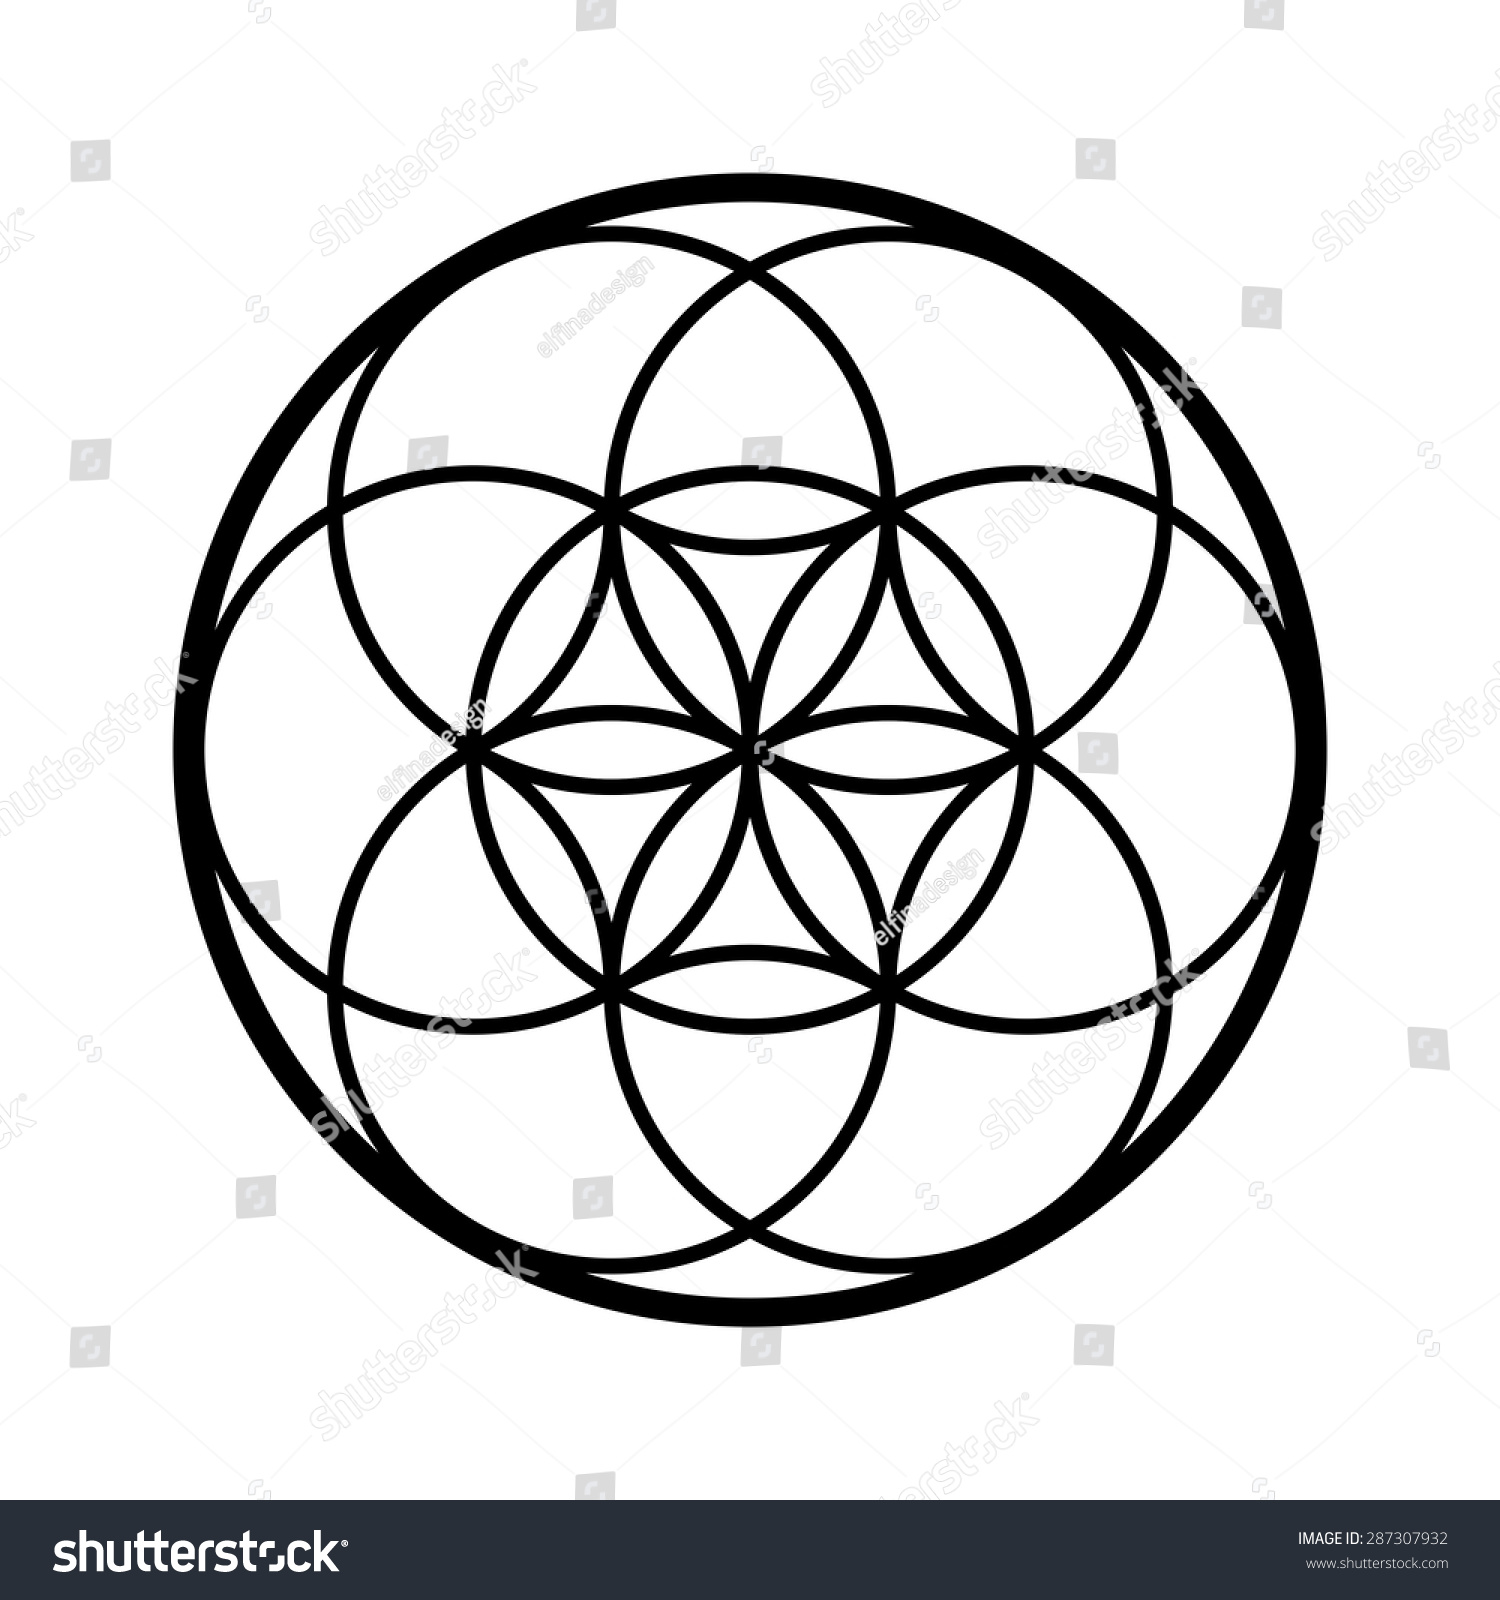 seed life vector sacred geometry symbol stock vector 2018 rh shutterstock com sacred geometry vector set meaning sacred geometry vector free download